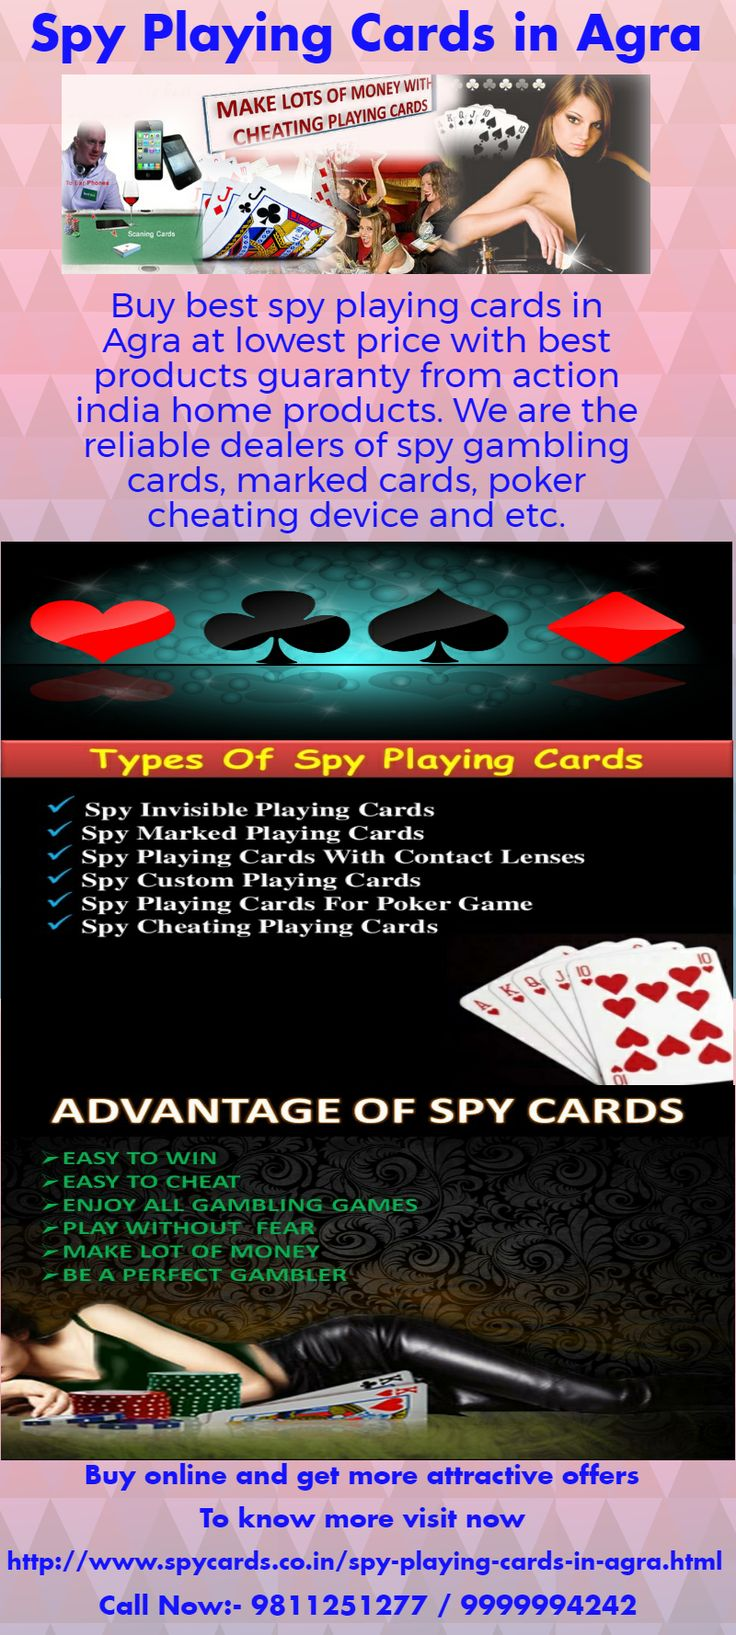 Now gambling games win to very easy with our latest spy playing cards, these cards are specially designed for cheating . Its 100% unique and long lasting cards. If play with these cards then user can cheat to anyone and win all games. On these cards have secret marked but no one can seen by naked eyes. Get more info visit: - http://www.spycards.co.in/spy-playing-cards-in-agra.html